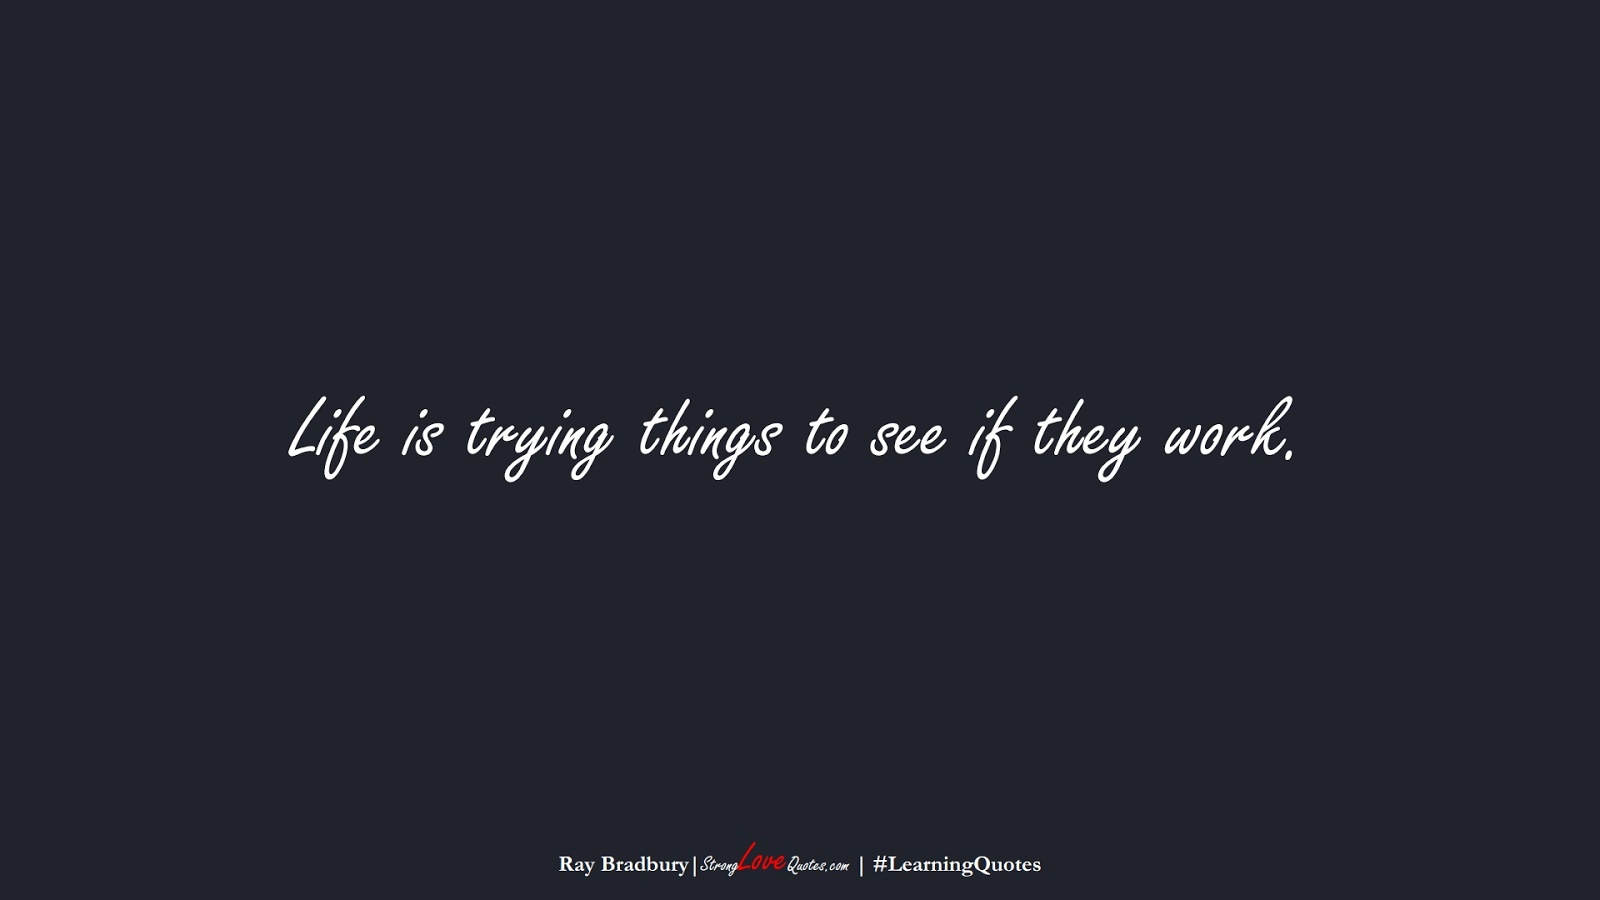 Life is trying things to see if they work. (Ray Bradbury);  #LearningQuotes